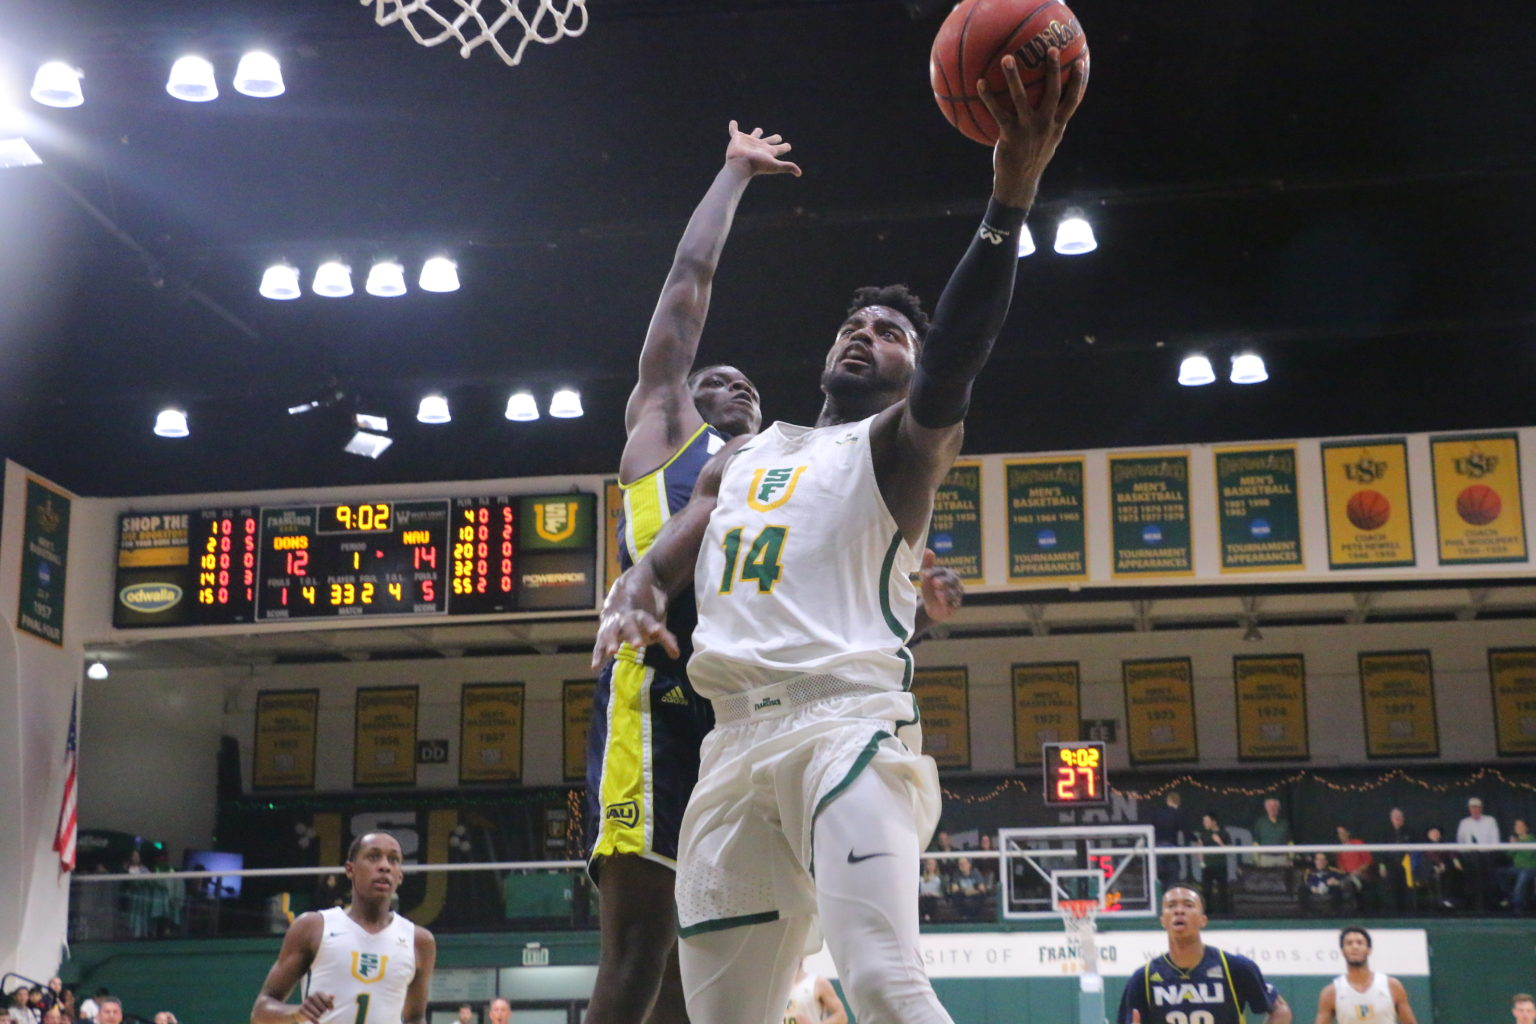 University of San Francisco guard Charles Minlend (14) goes up for a layup in the first half of a game against Northern Arizona on Dec. 19, 2018, at War Memorial Gymnasium in the Sobrato Center in San Francisco, Calif. Minlend finished with 18 points. (Ryan Gorcey / S.F. Examiner)